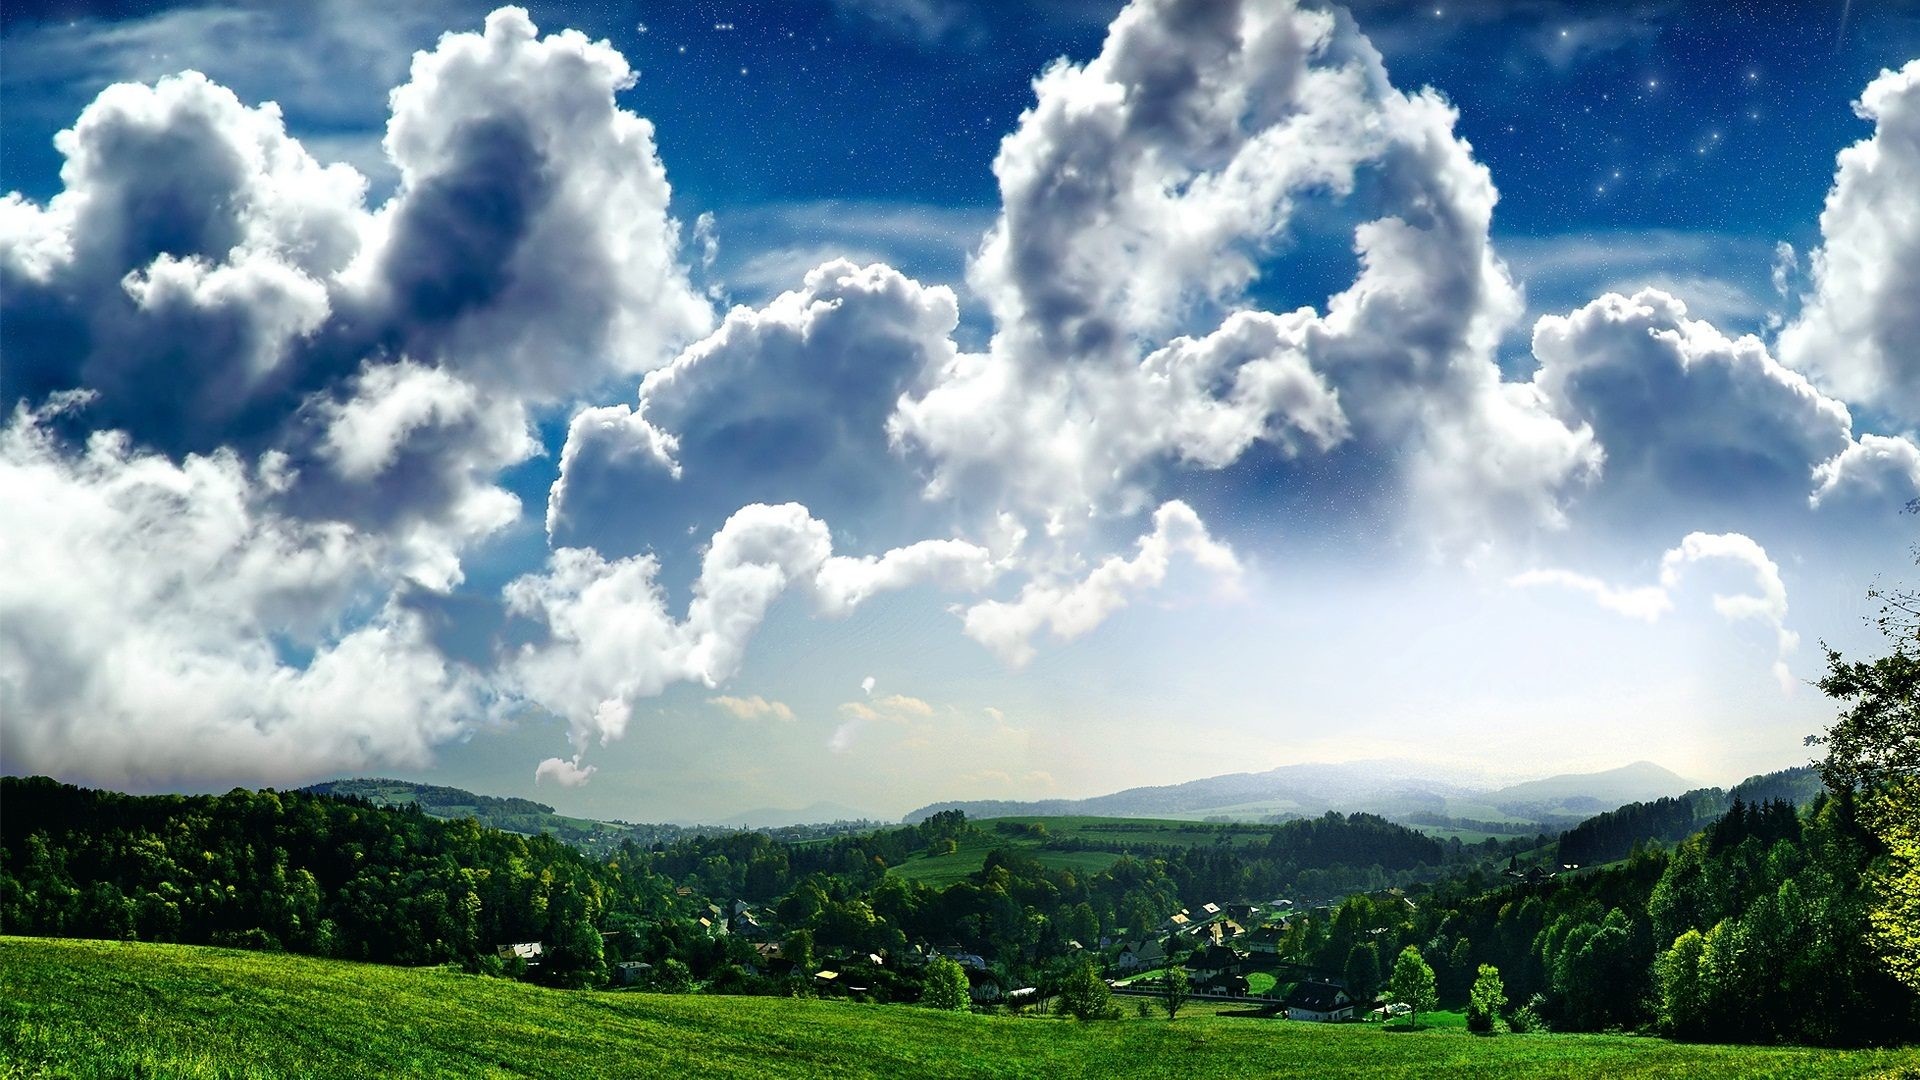 Clear Blue Sky With Cloudy As A Background Wallpaper, Pastel Sky .